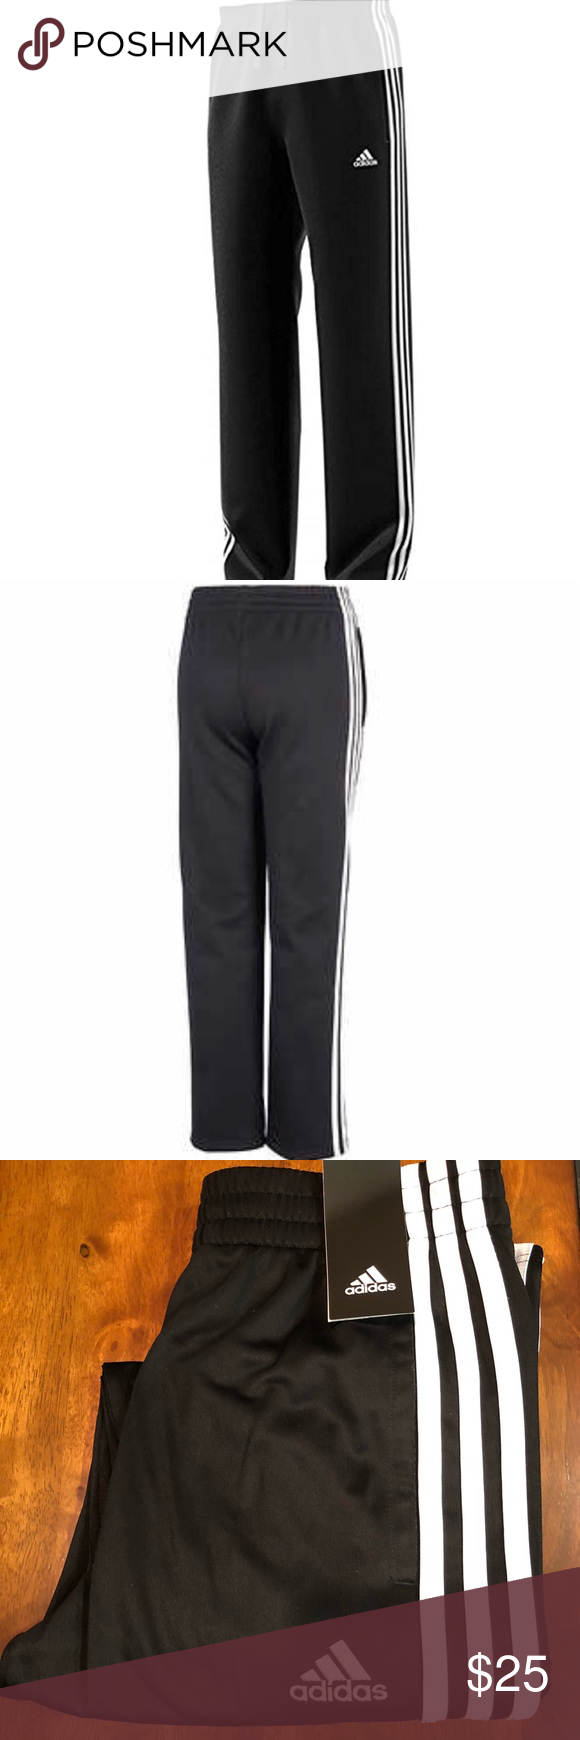 Adidas Classic Youth Med. Black & White Tech Pant NWT